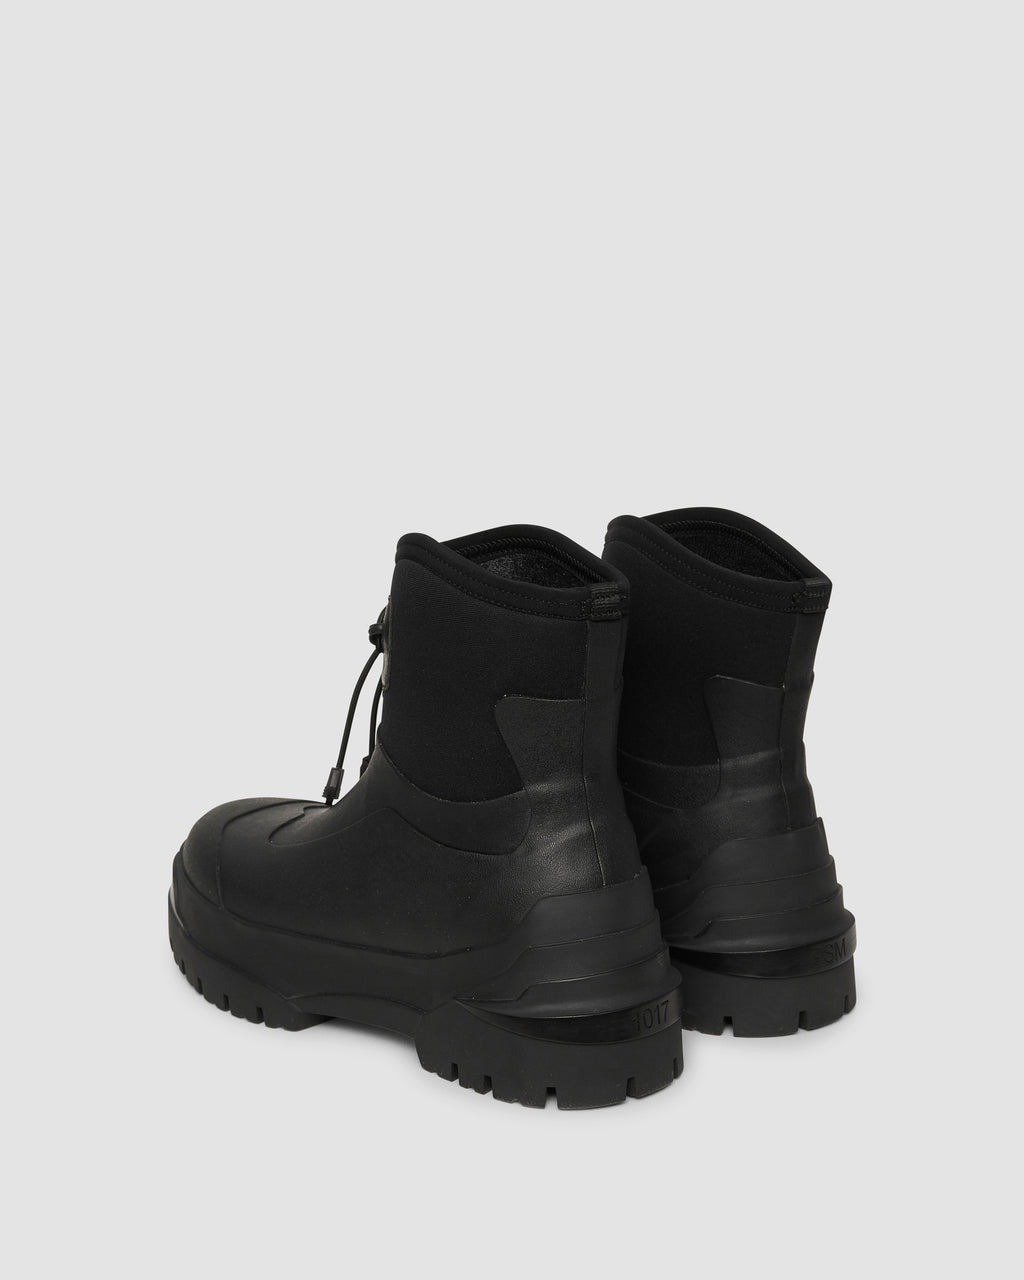 1017 ALYX 9SM | MONCLER ALISON SHOES | Shoe | BLACK, BOOTS, Google Shopping, Man, Moncler, S20, UNISEX, Woman